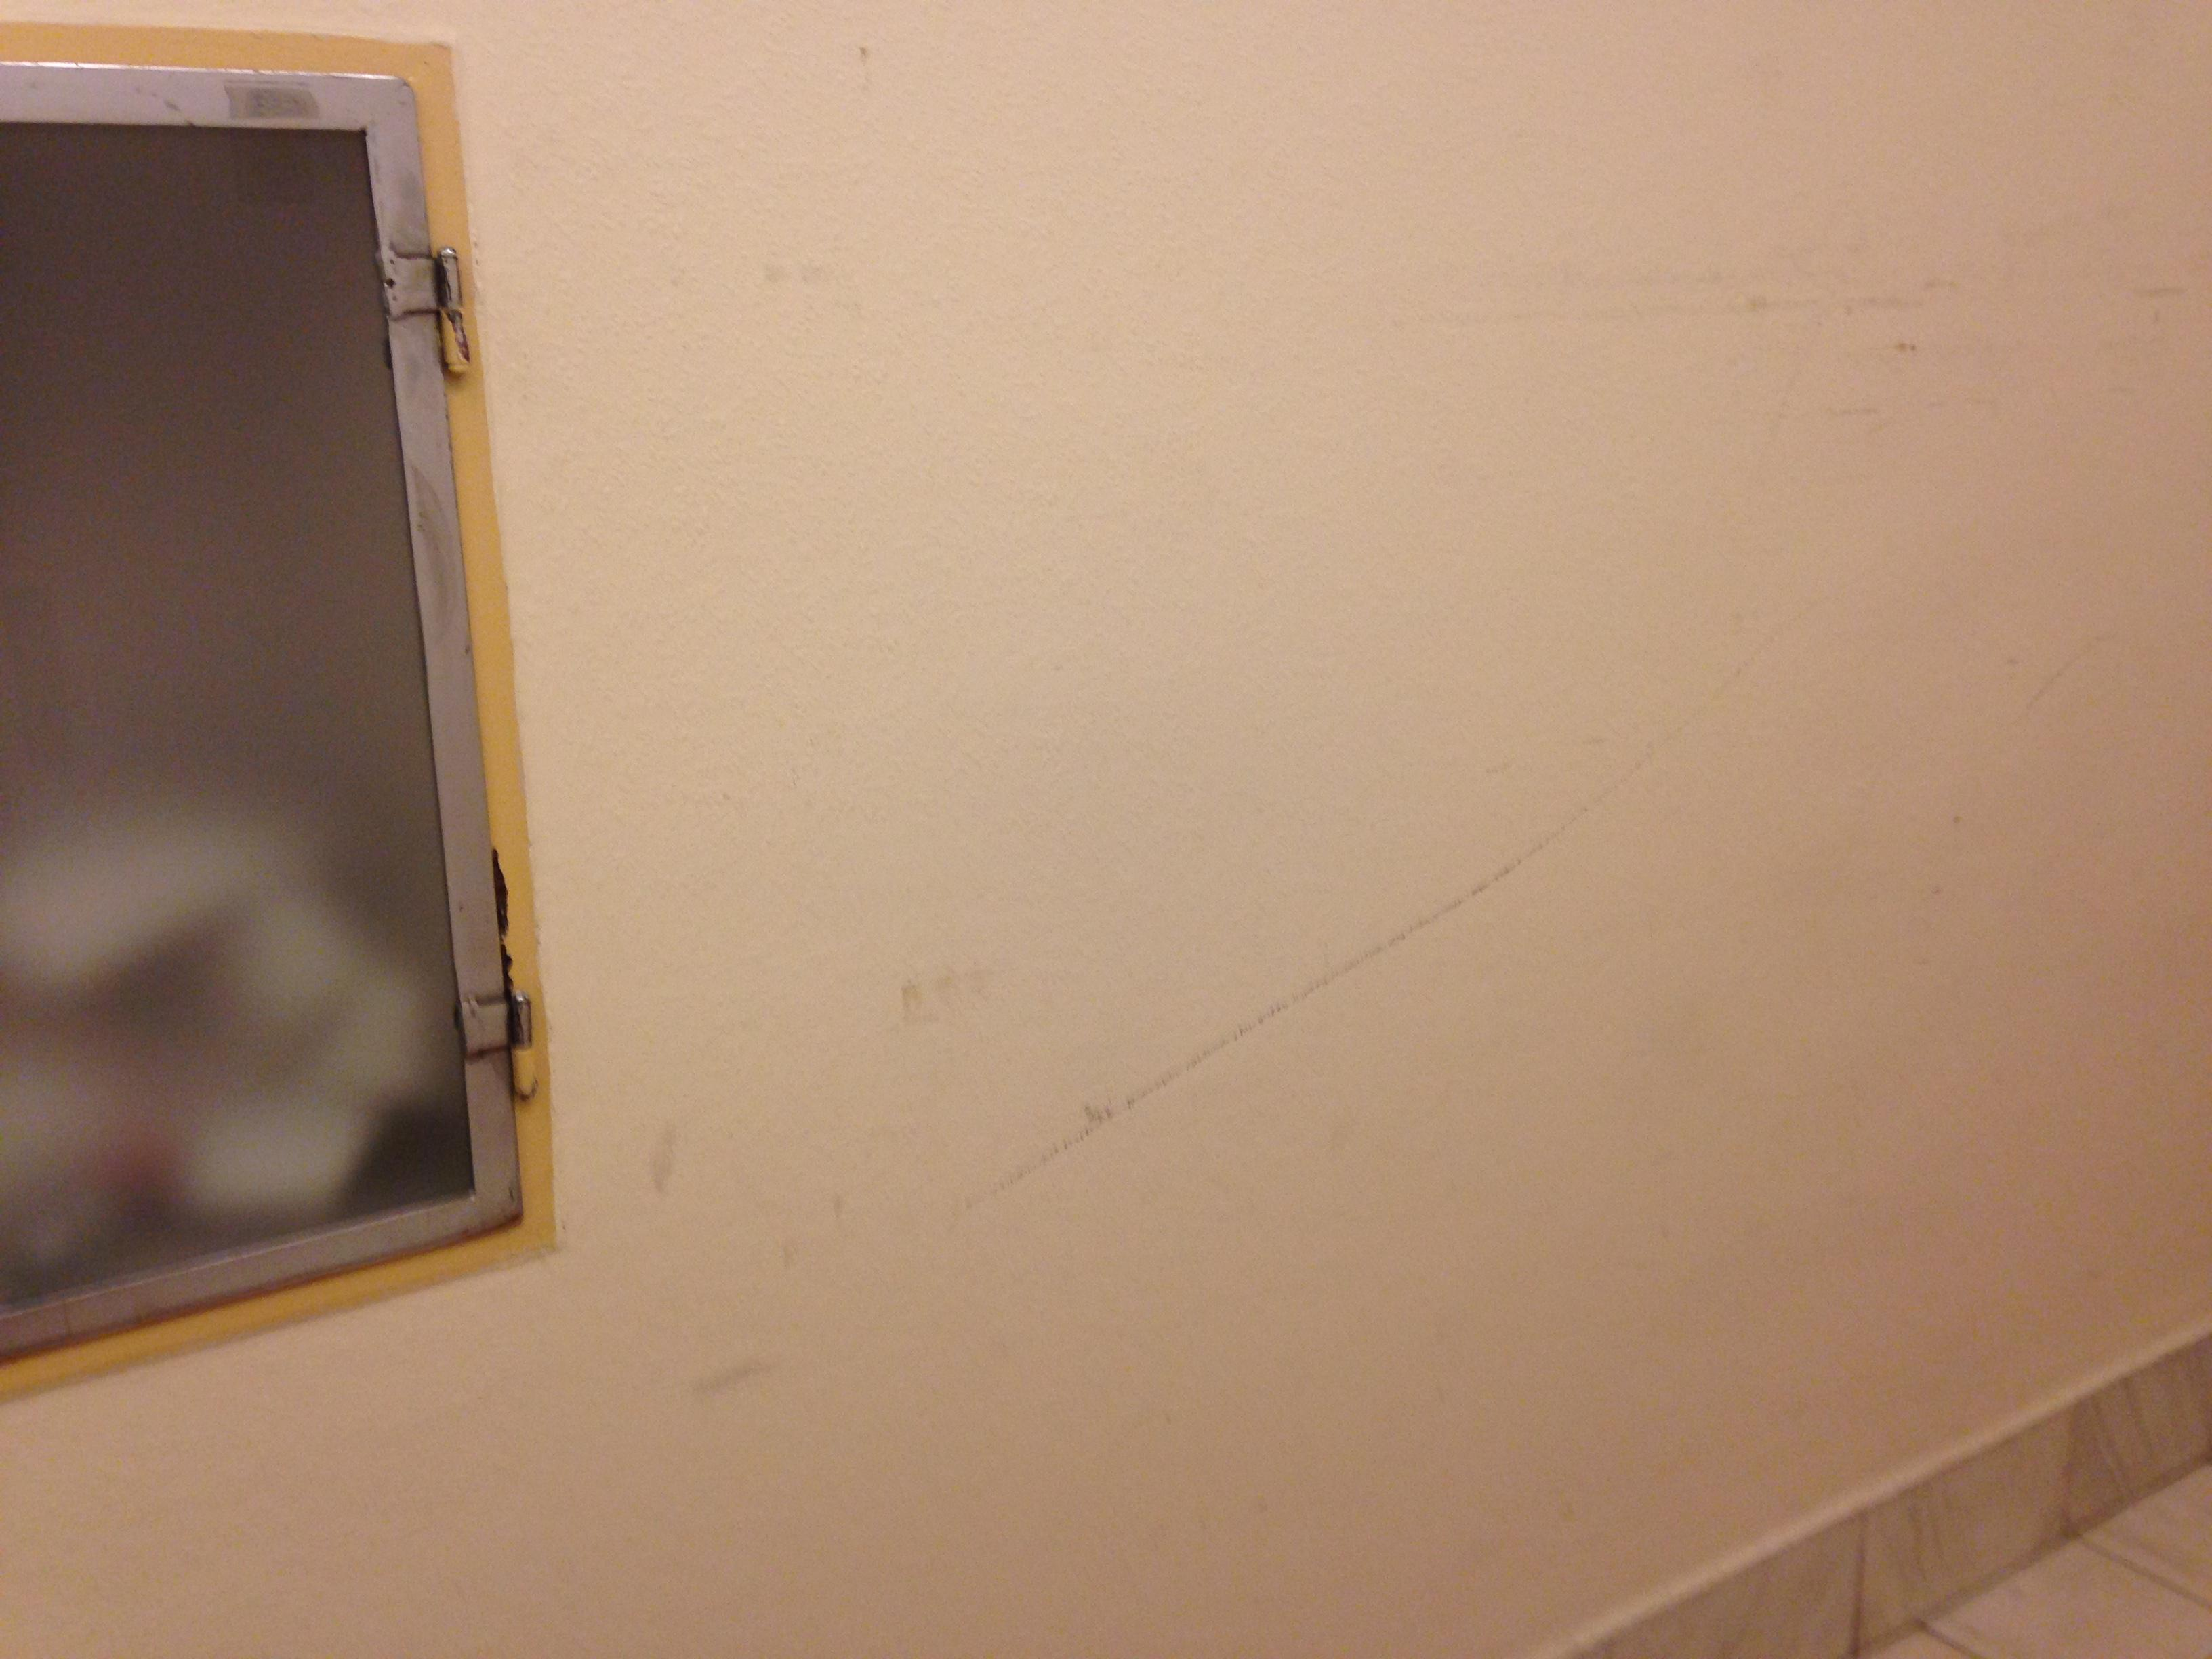 Marks on walls